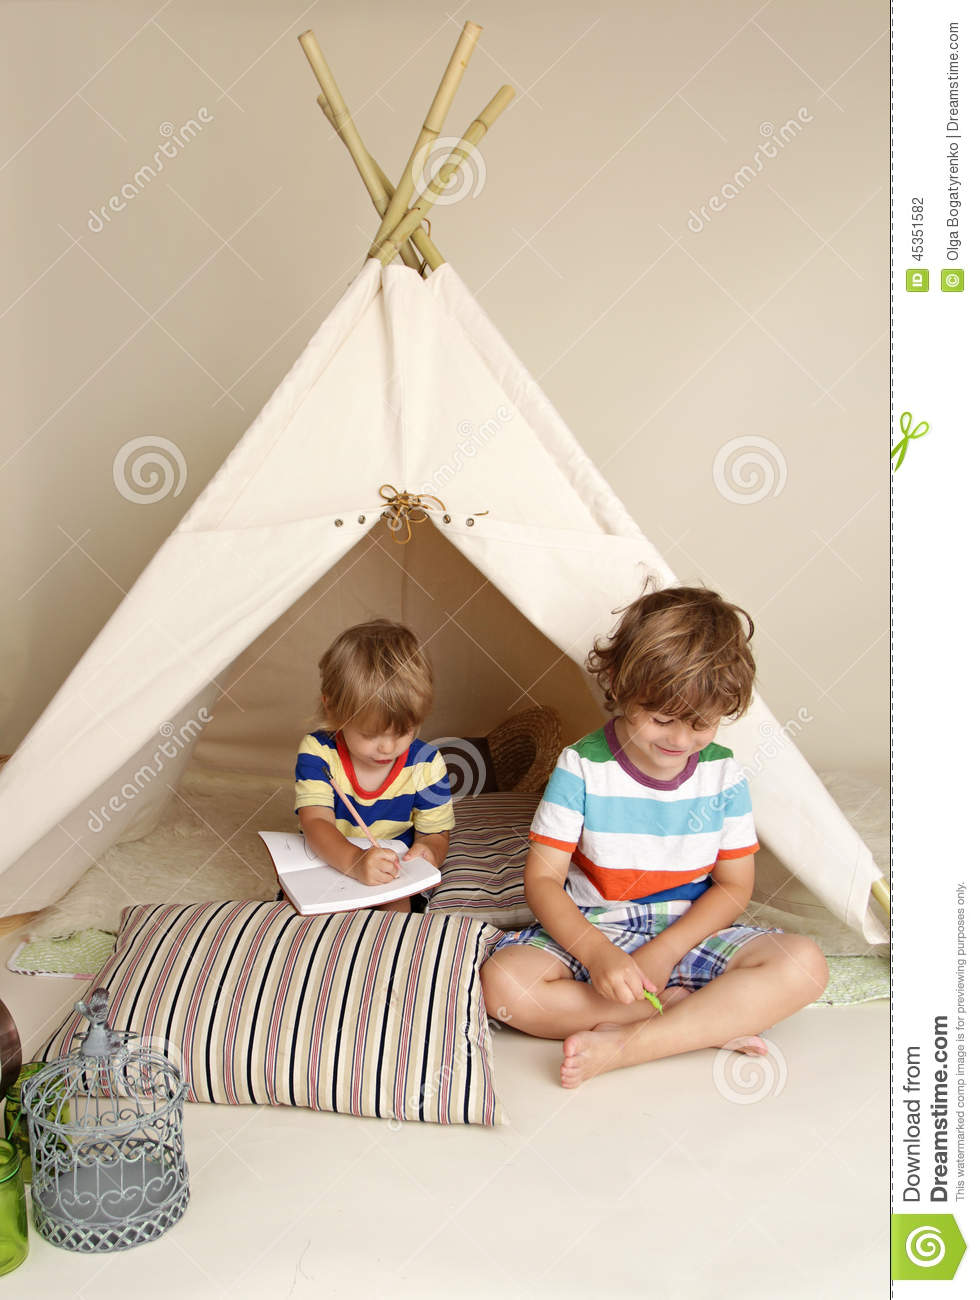 Teepee floor cushion